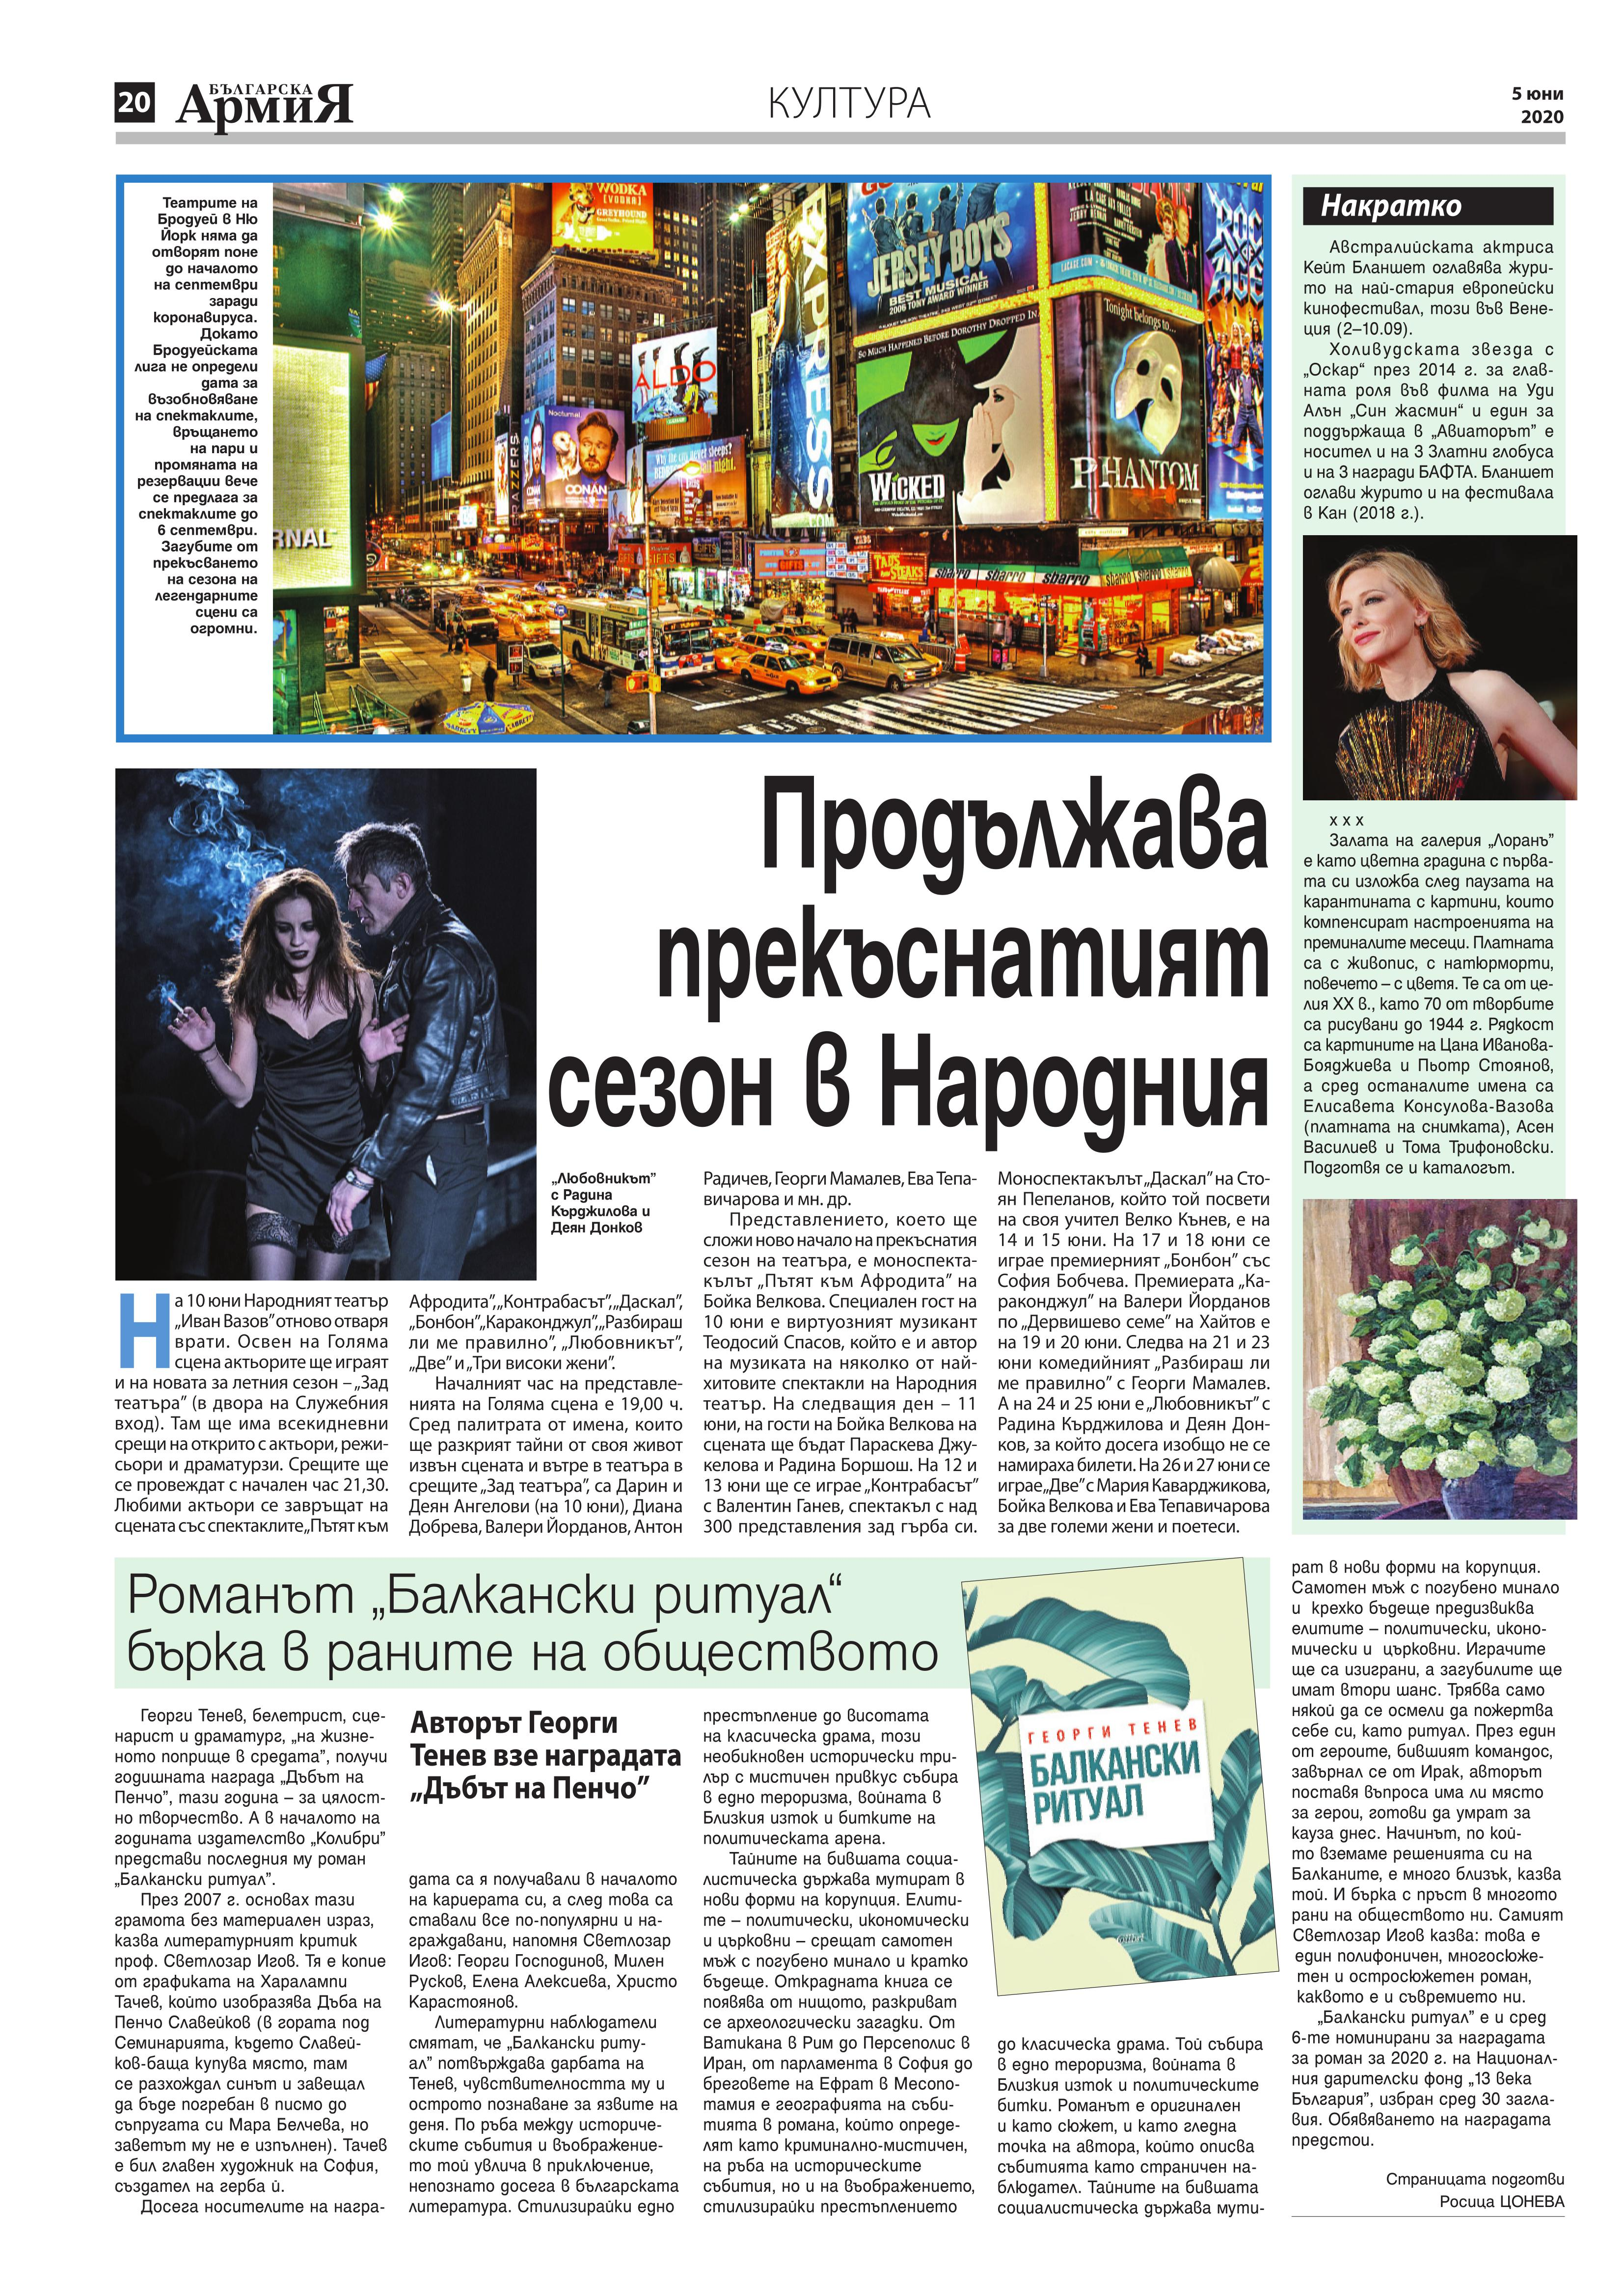 https://www.armymedia.bg/wp-content/uploads/2015/06/20.page1_-141.jpg